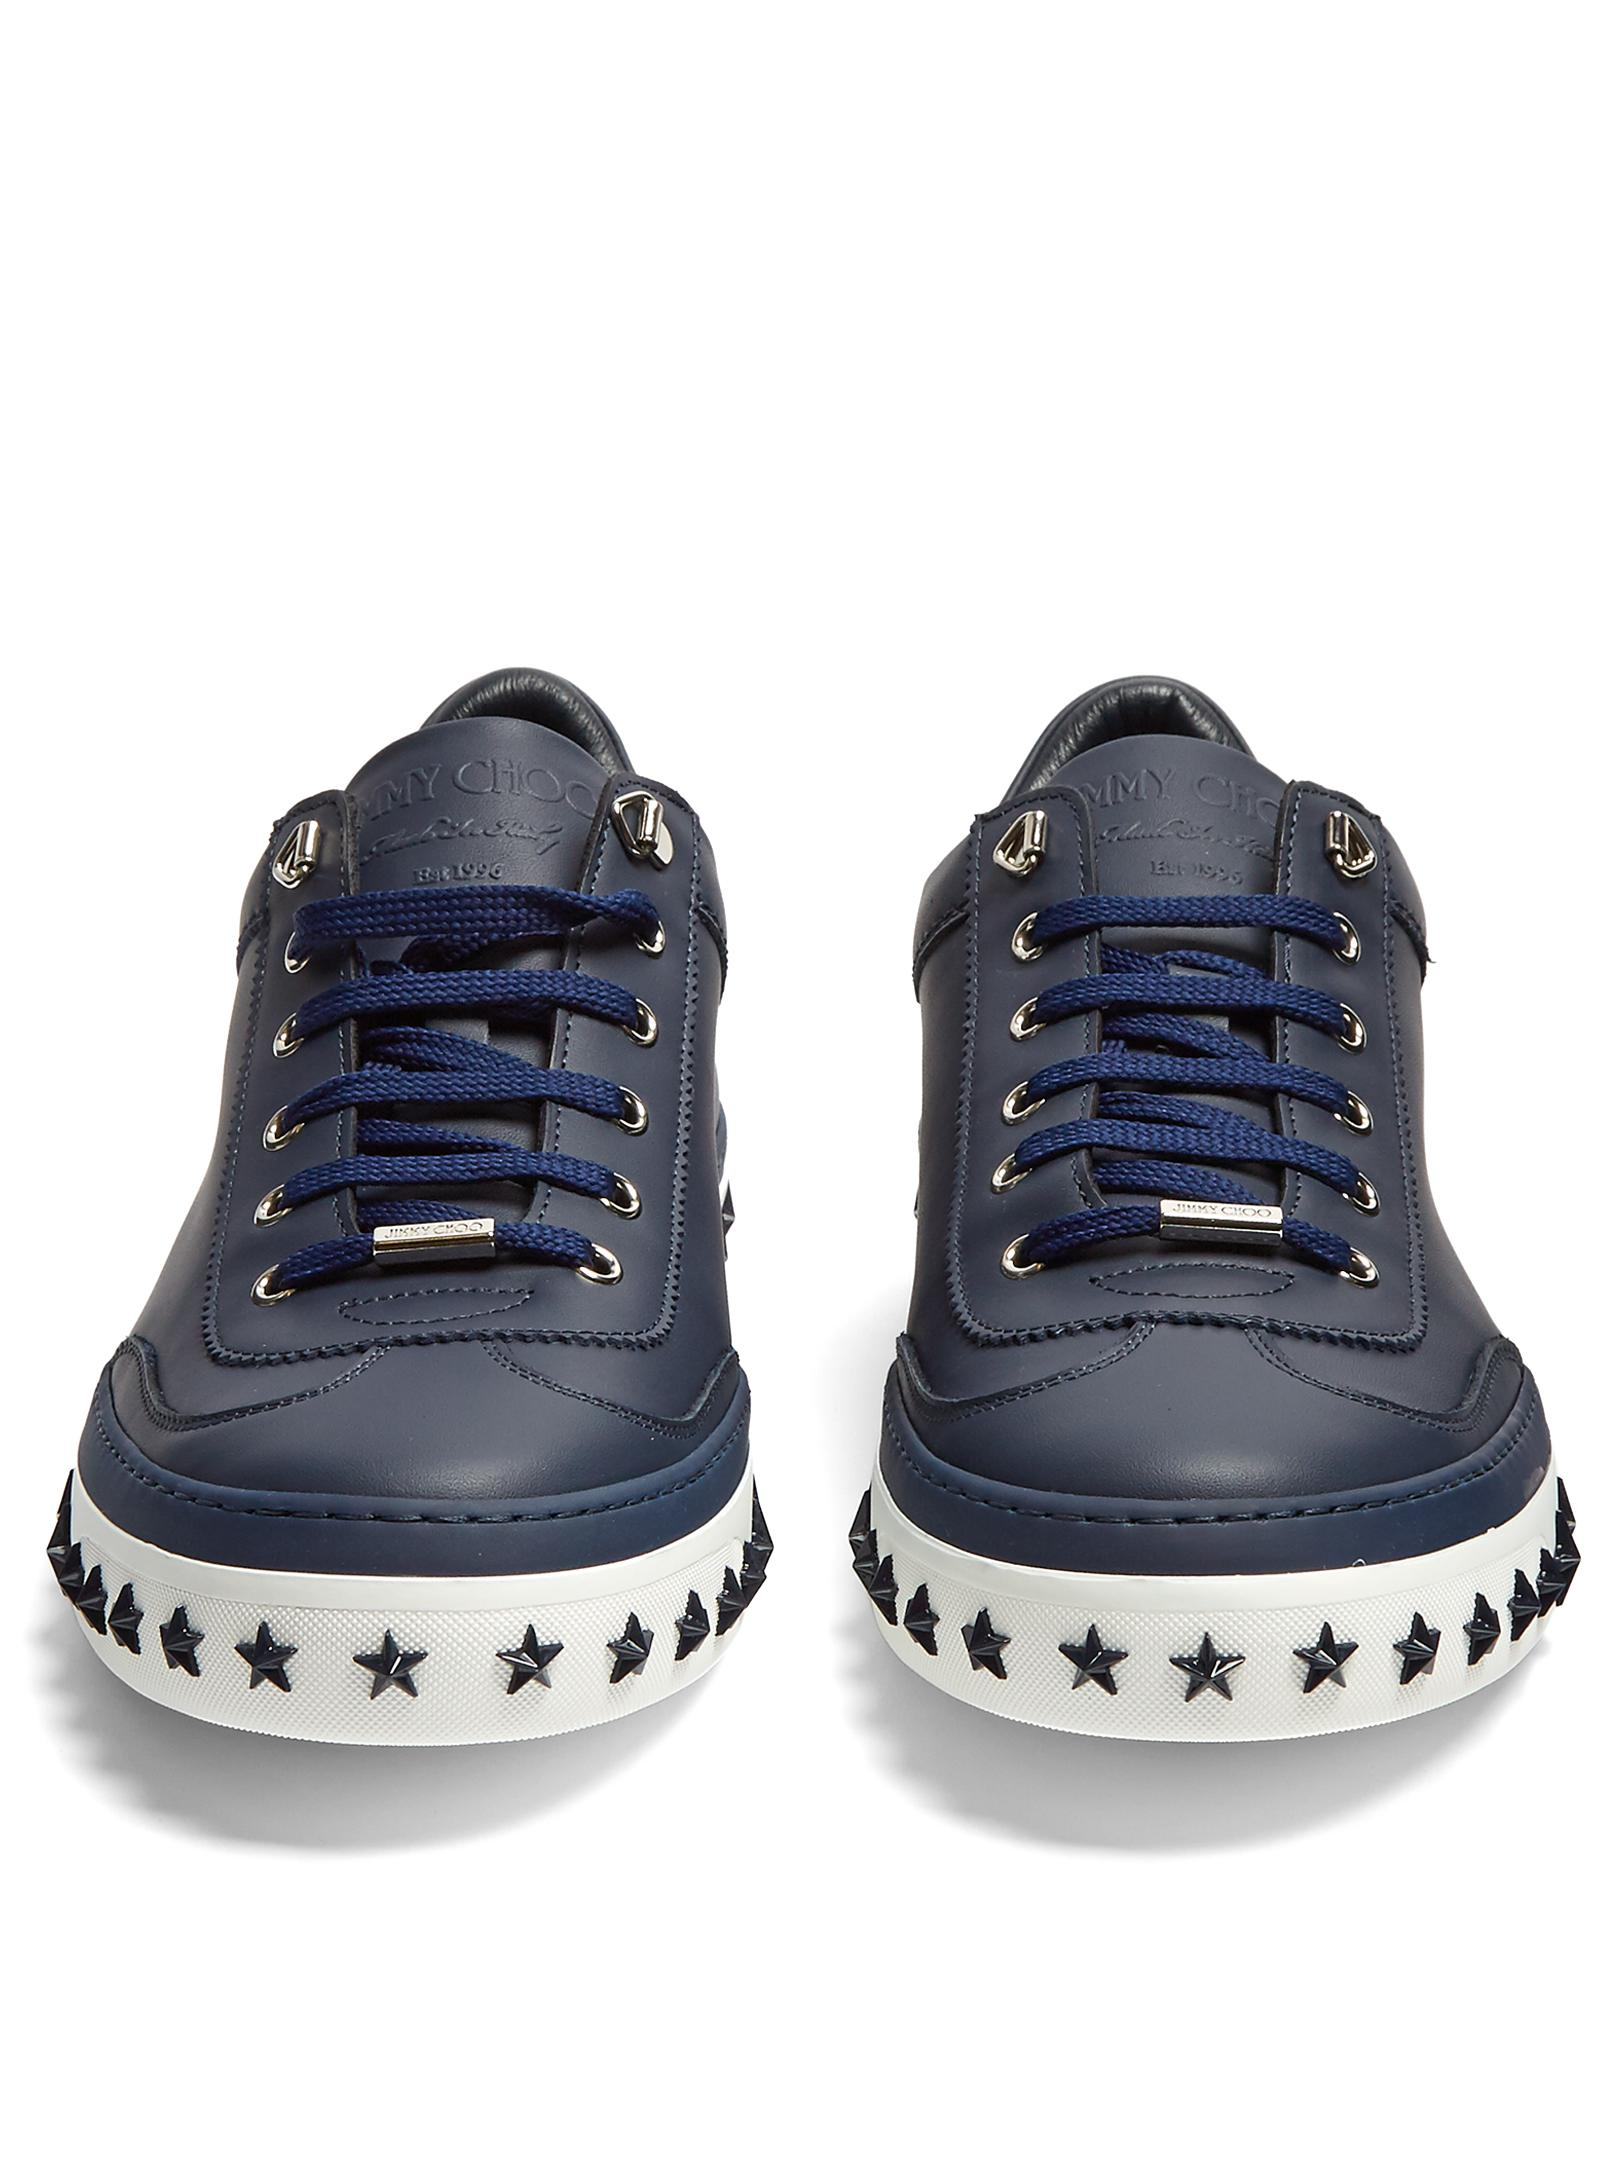 Jimmy Choo Ace Low-top Leather Trainers in Navy (Blue) for Men